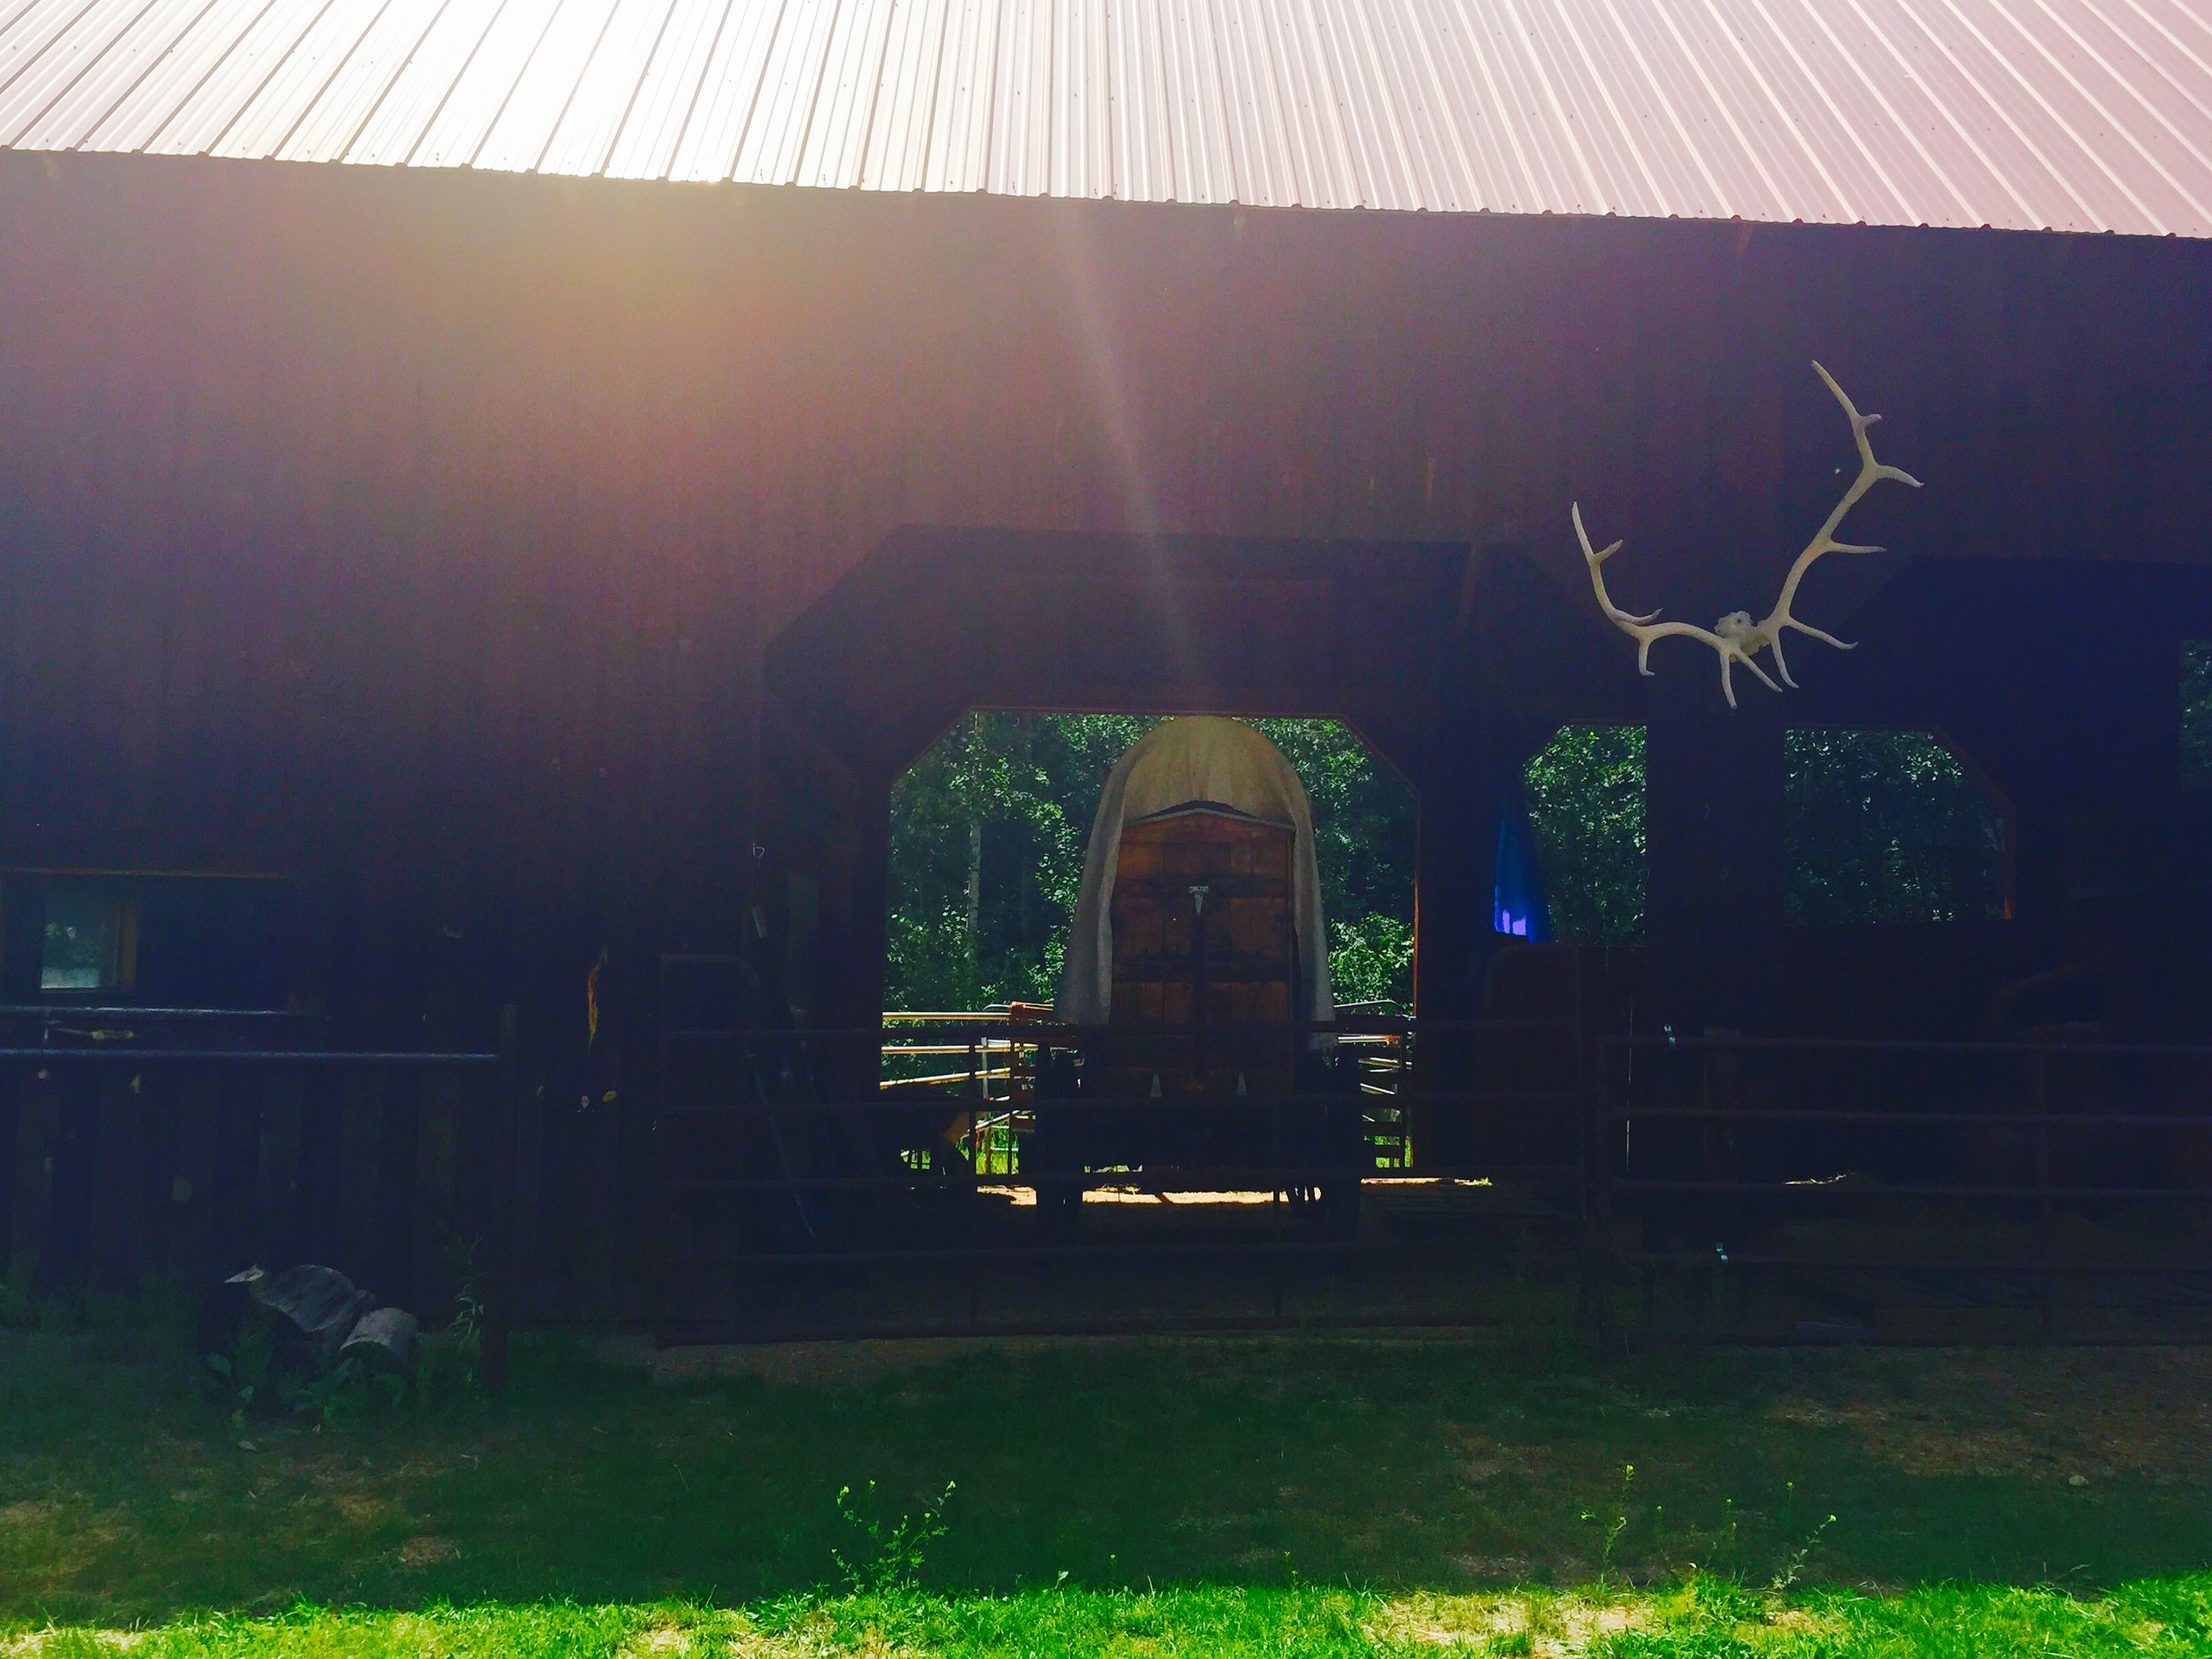 Shalako Ranch, now called, Sword of Truth Ranch